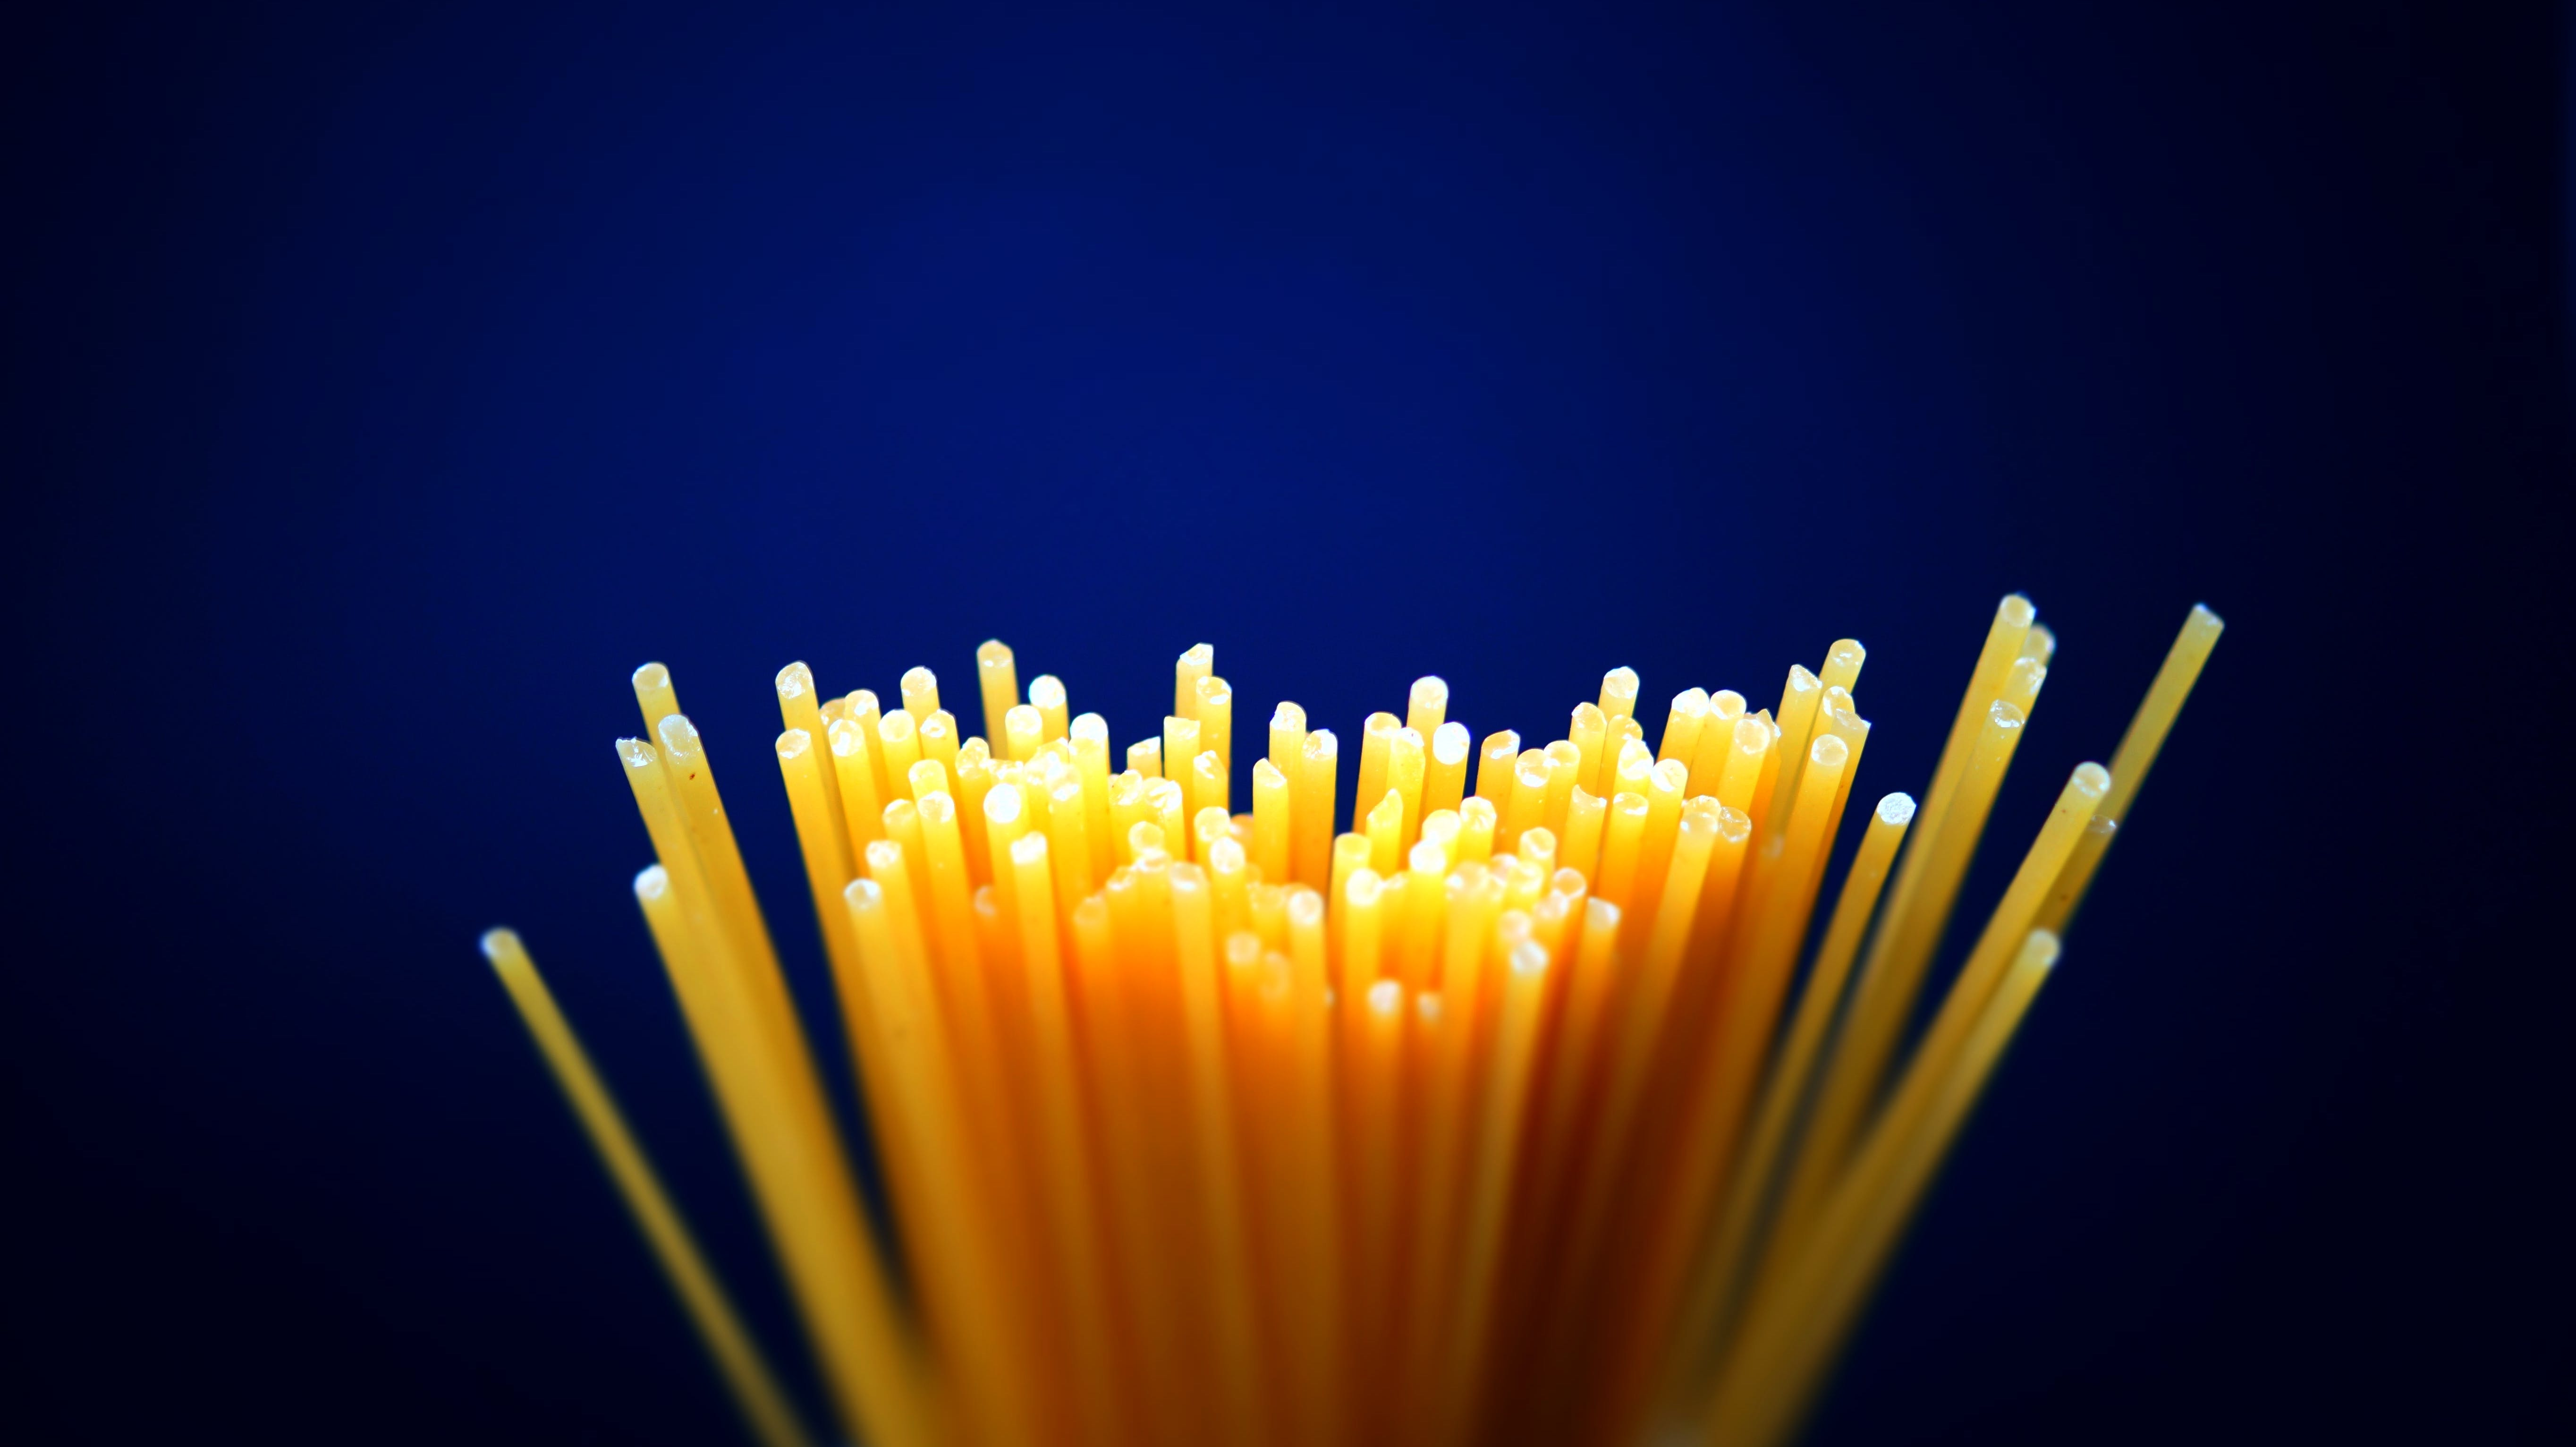 Free stock photo of food, pasta, depth of field, uncooked